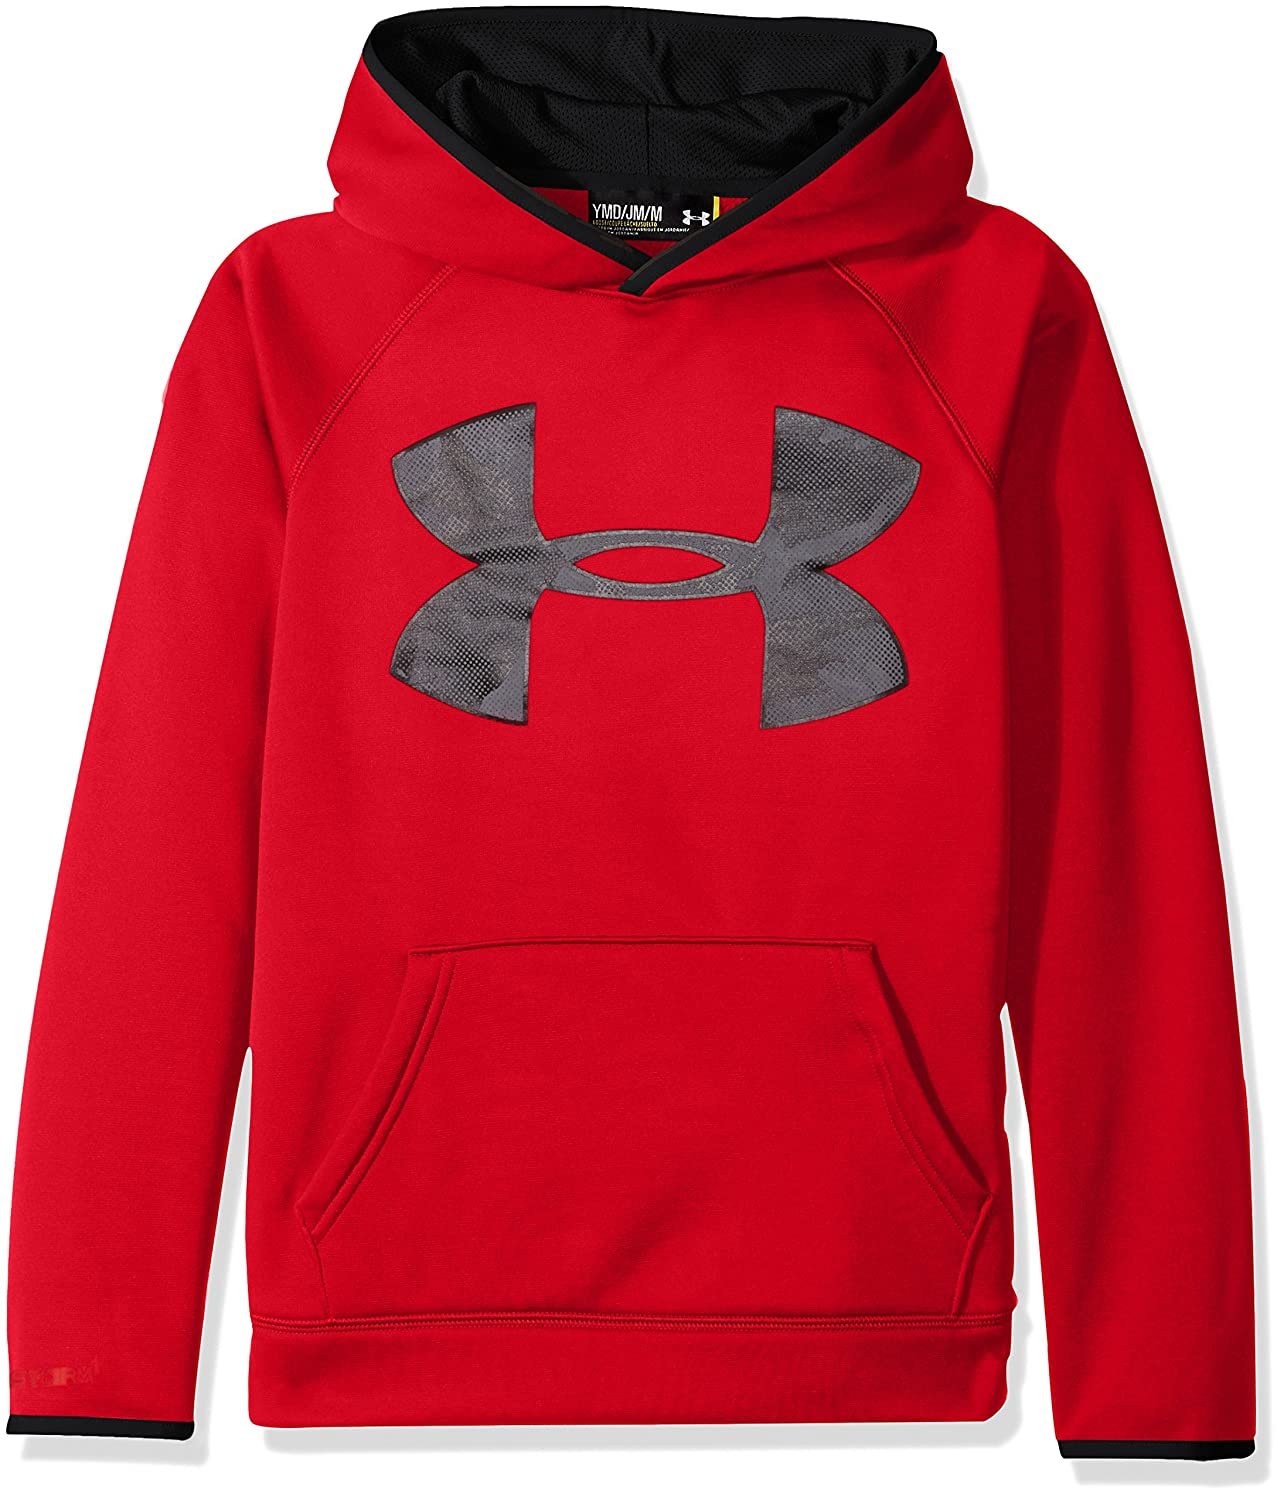 0207b56ca Under Armour Boys' Storm Armour Fleece Highlight Big Logo Hoodie Under  Armour Apparel 1281073